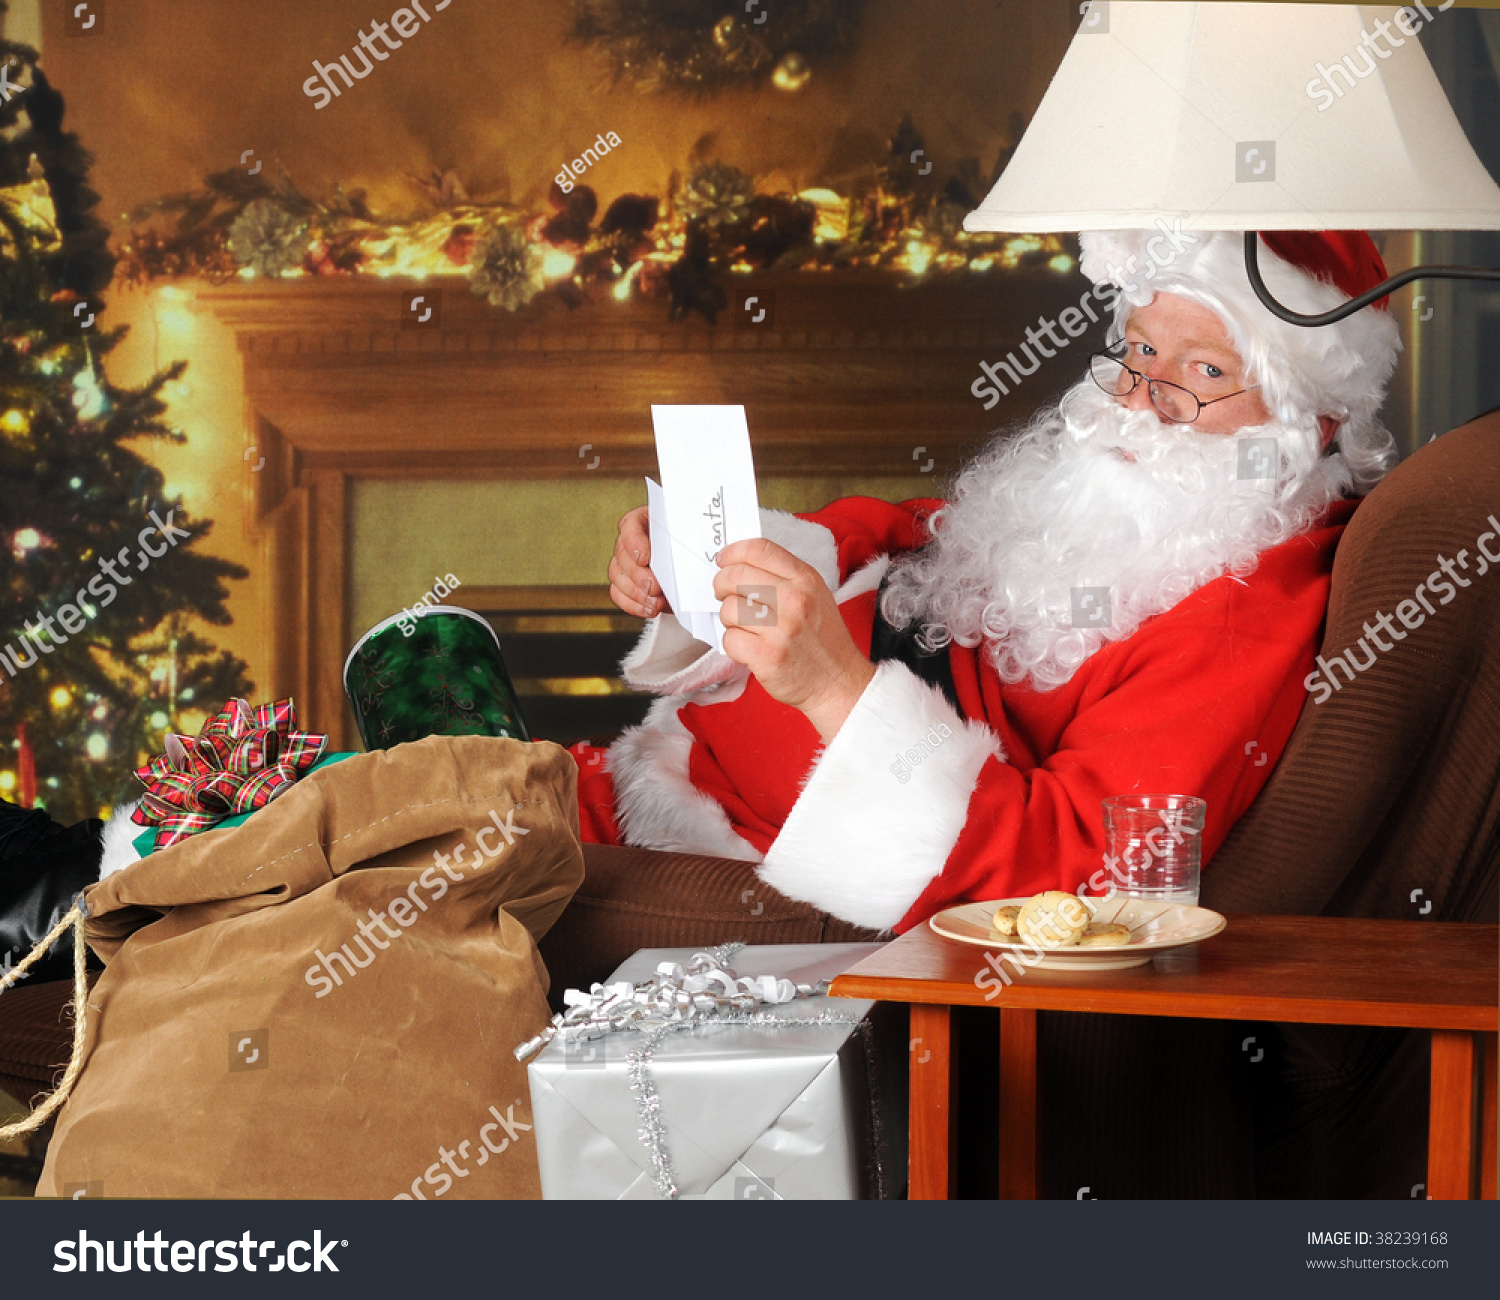 Santa Opening A Note Left By His Cookies And Milk In A Decorated Living Room Stock Photo